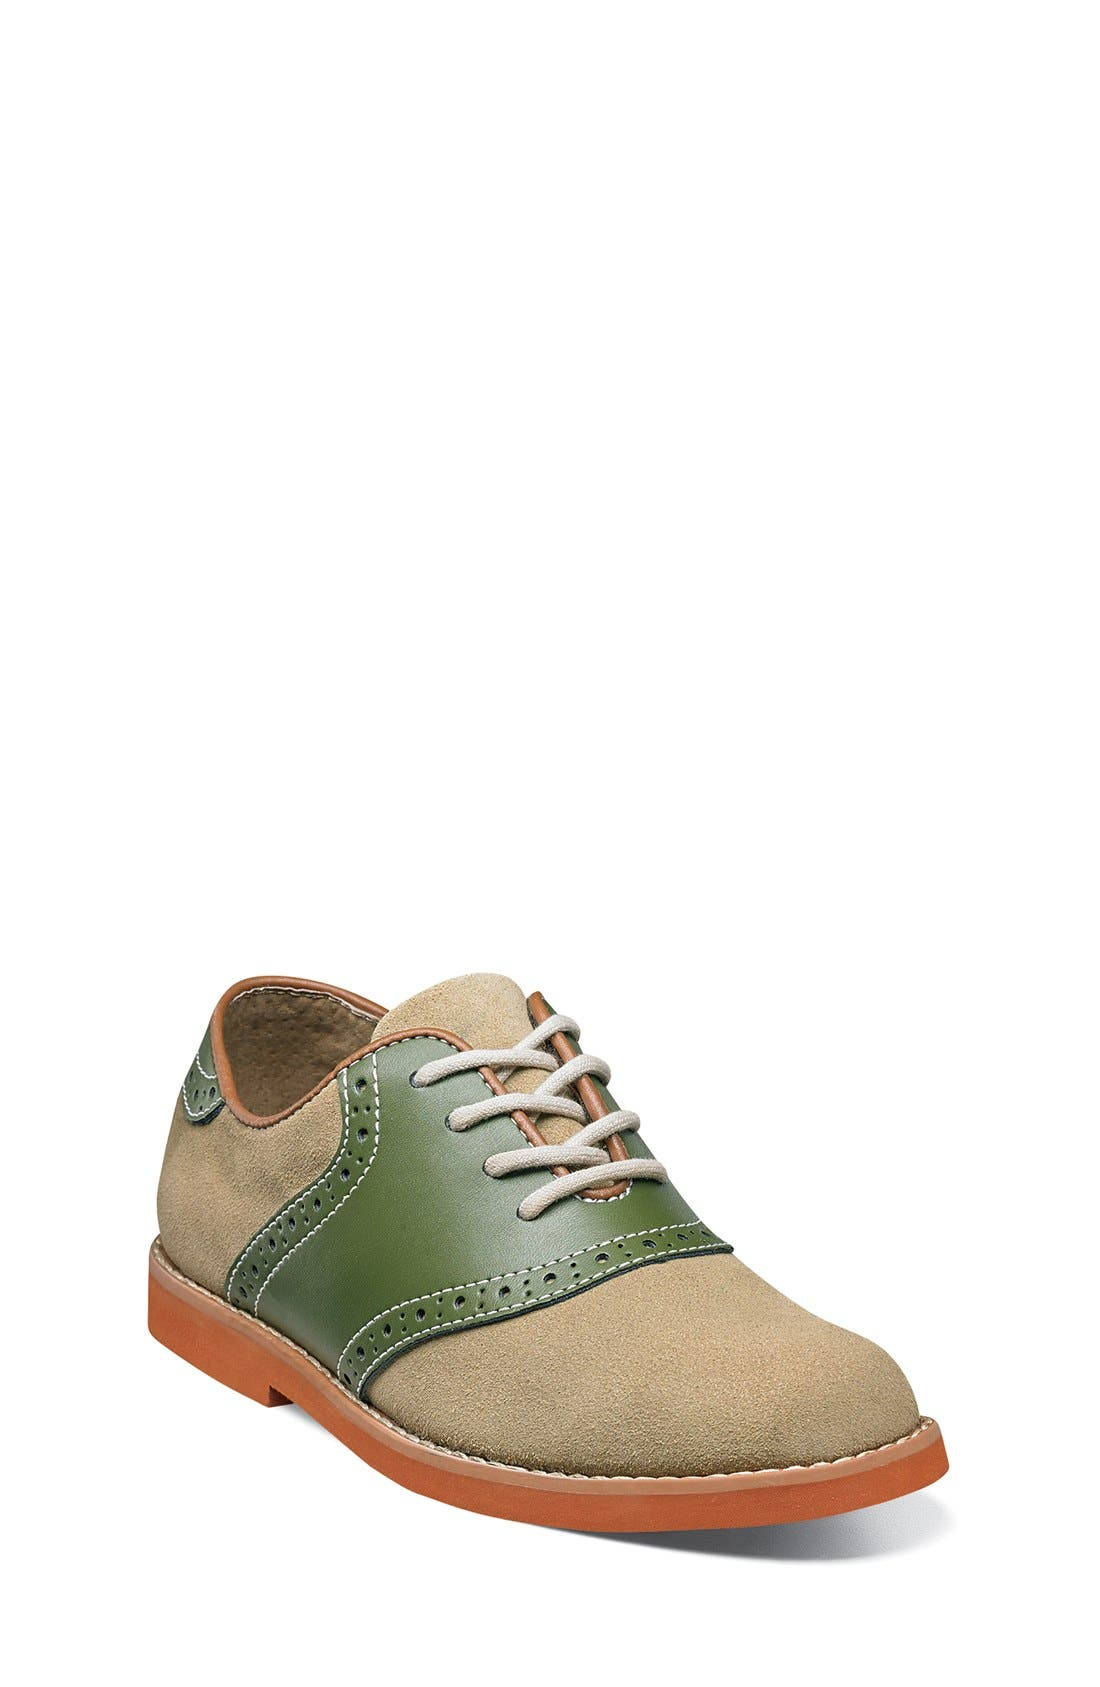 FLORSHEIM 'Kennett Jr.' Saddle Shoe